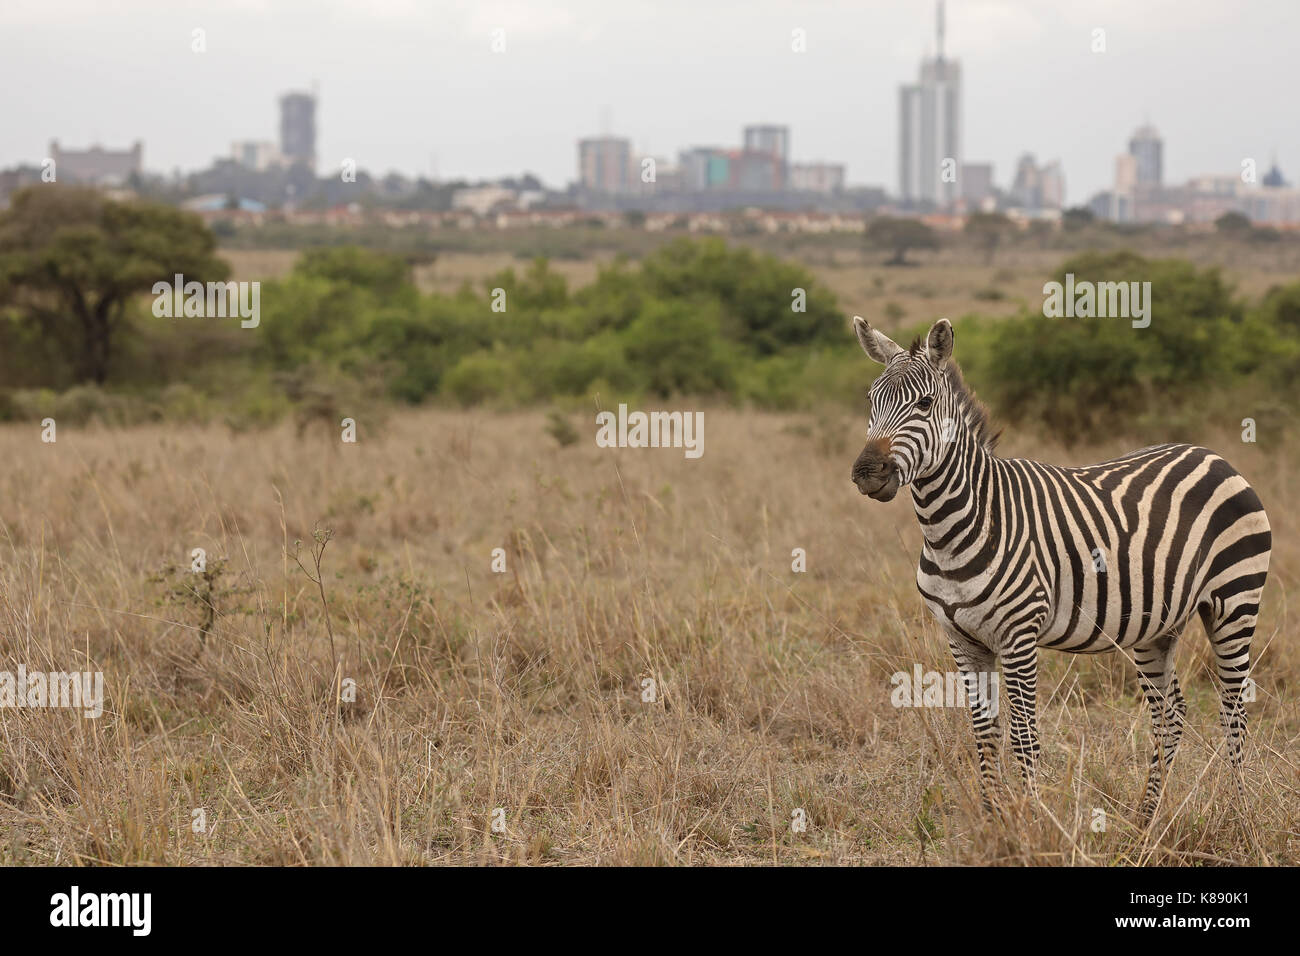 Common zebra, Equus quagga, Nairobi National Park, Nairobi city in background, Nairobi, Kenya - Stock Image